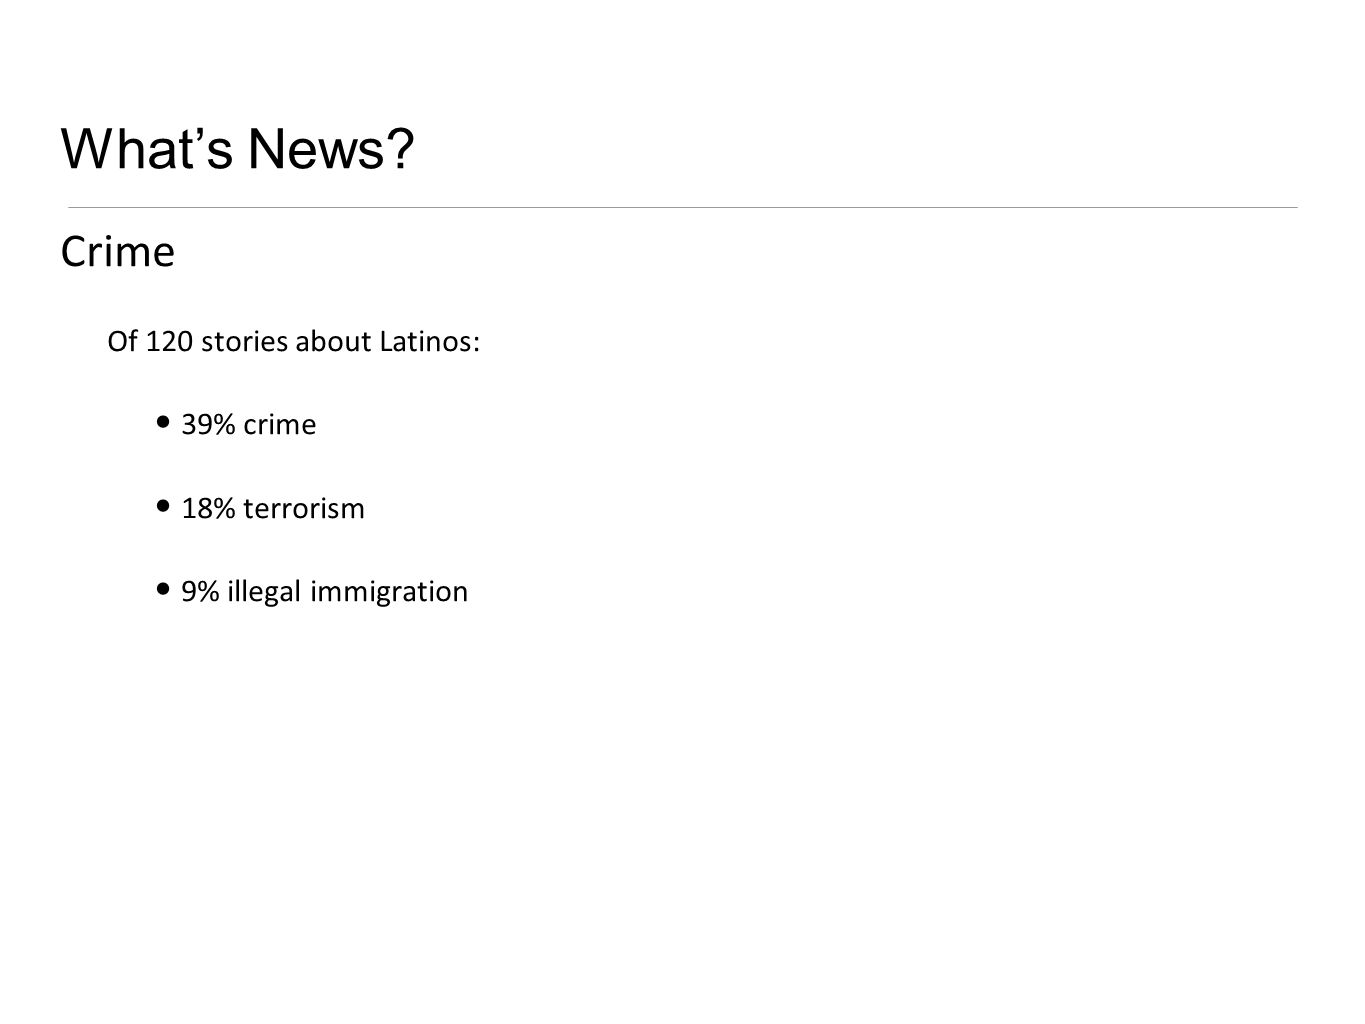 Whats News Crime Of 120 stories about Latinos: 39% crime 18% terrorism 9% illegal immigration